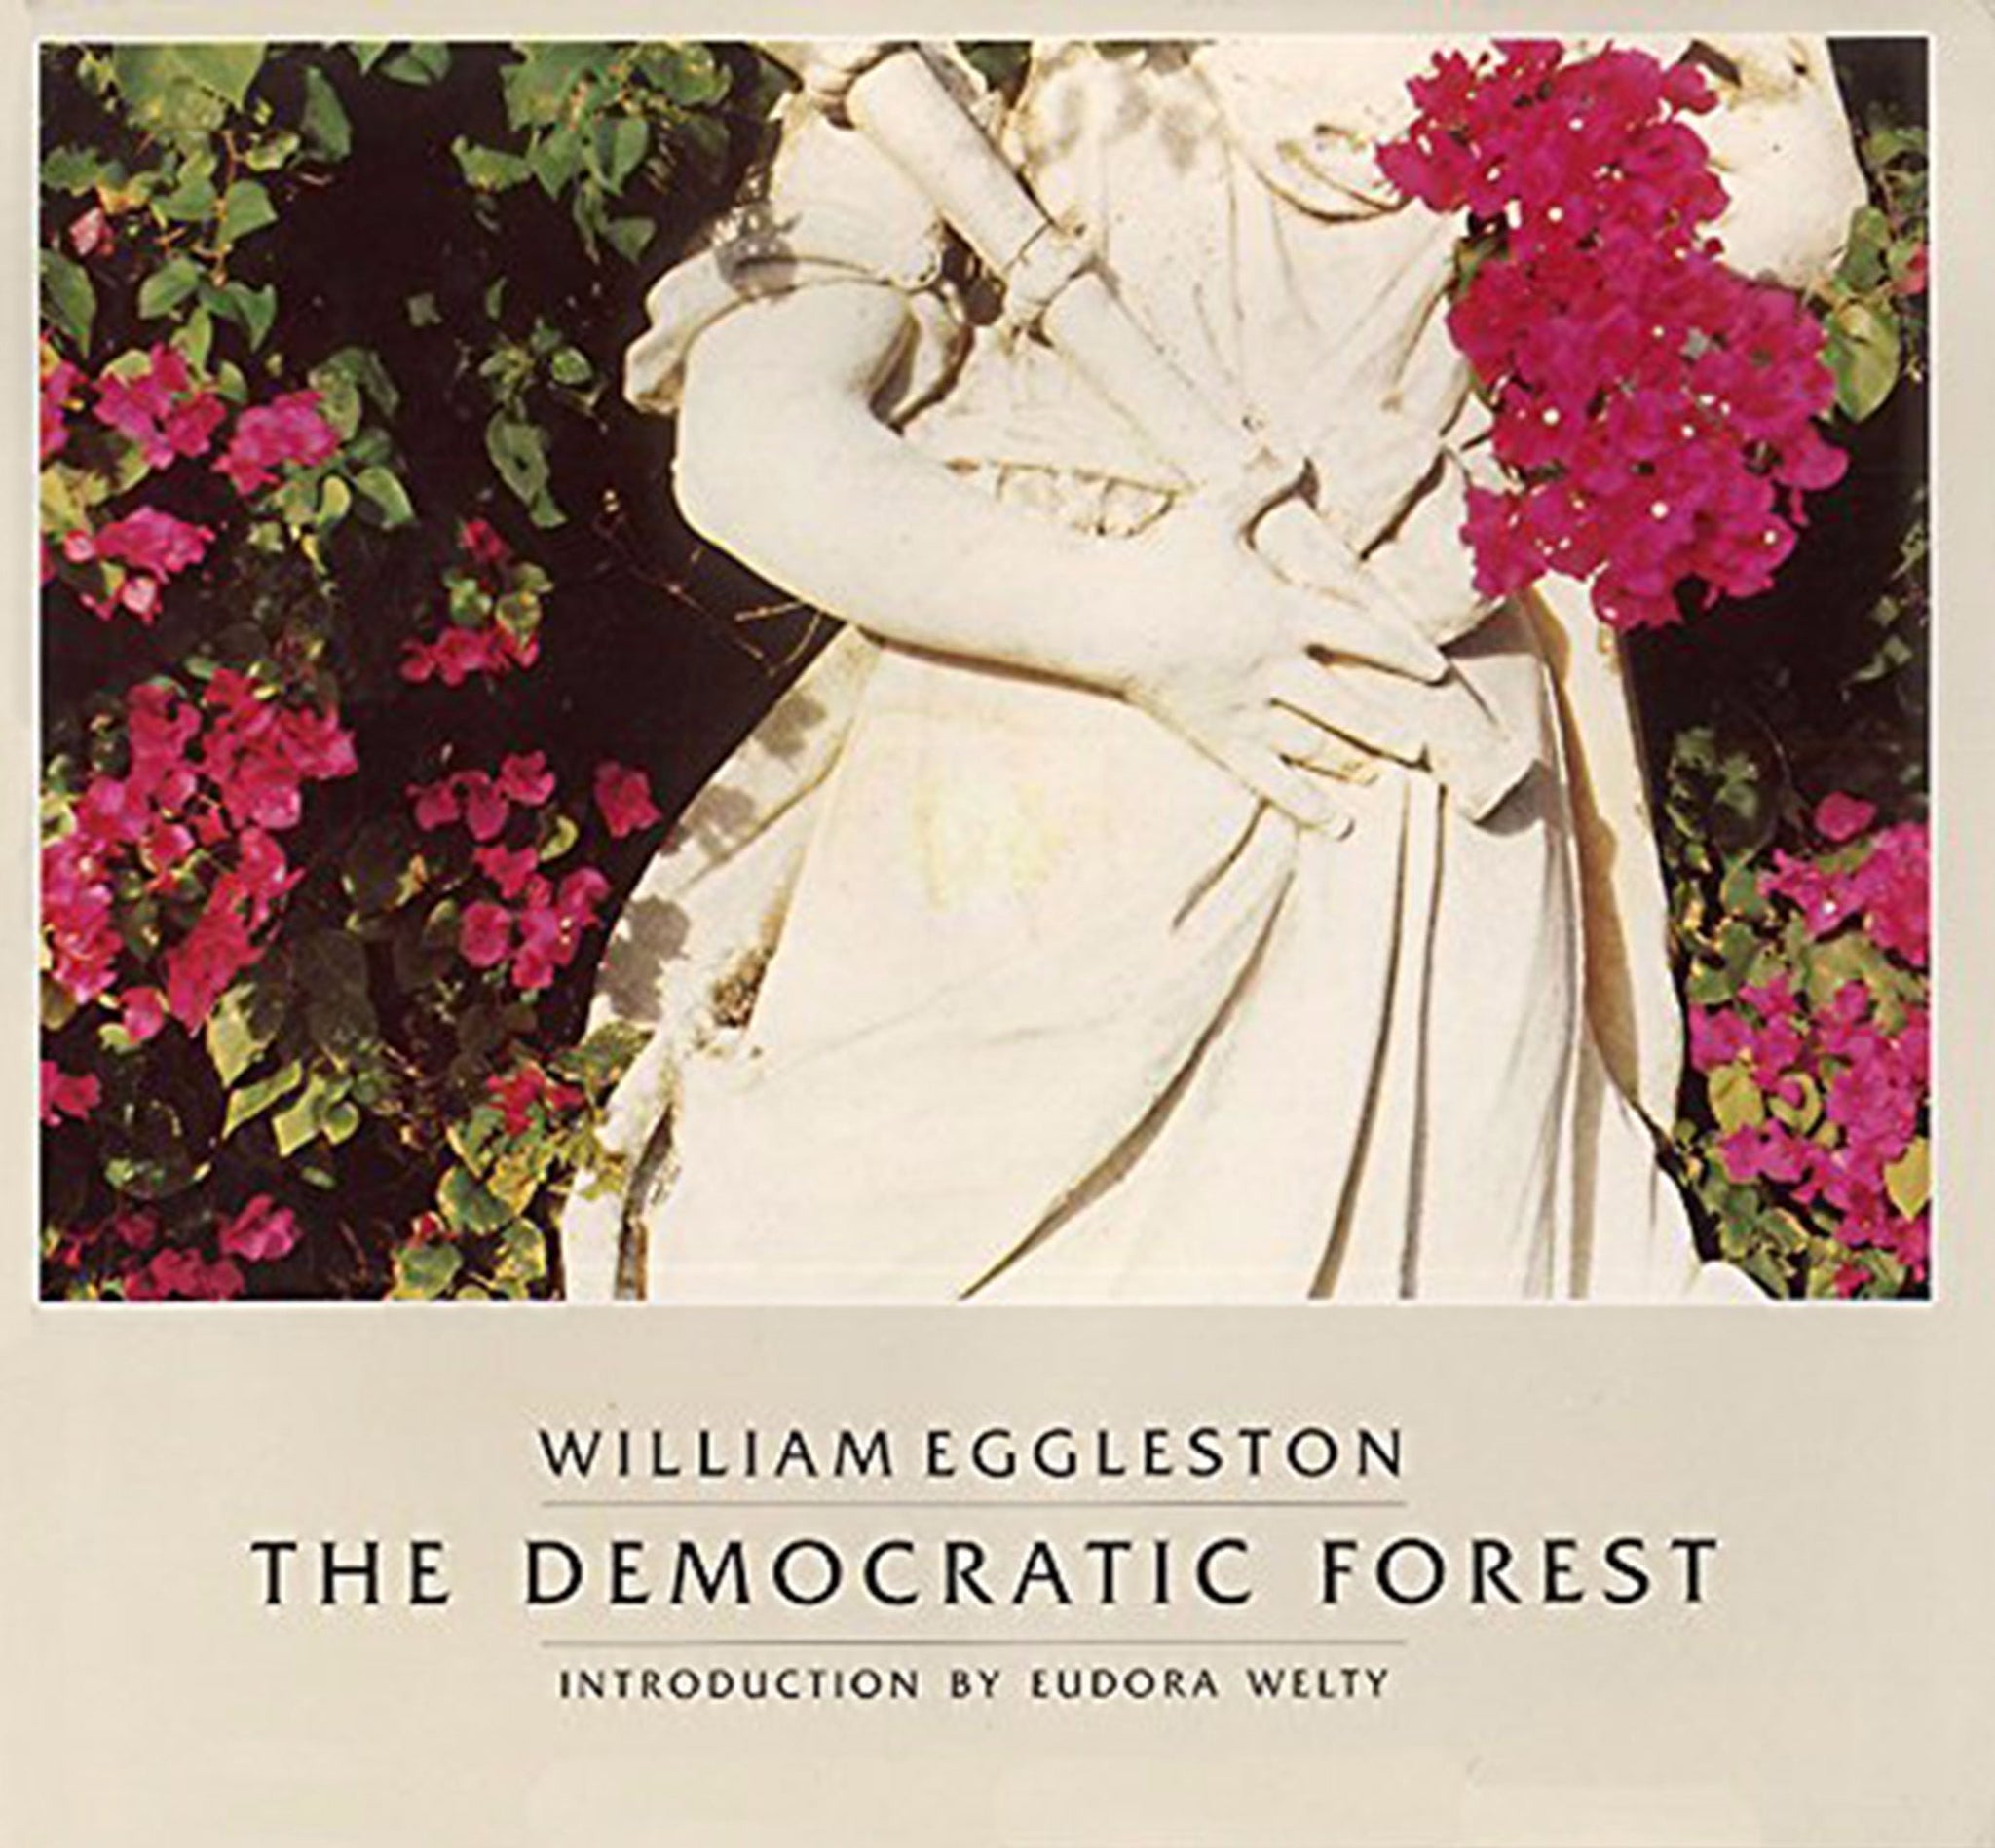 William Eggleston, The Democratic Forest 1989 1st ed. *signed